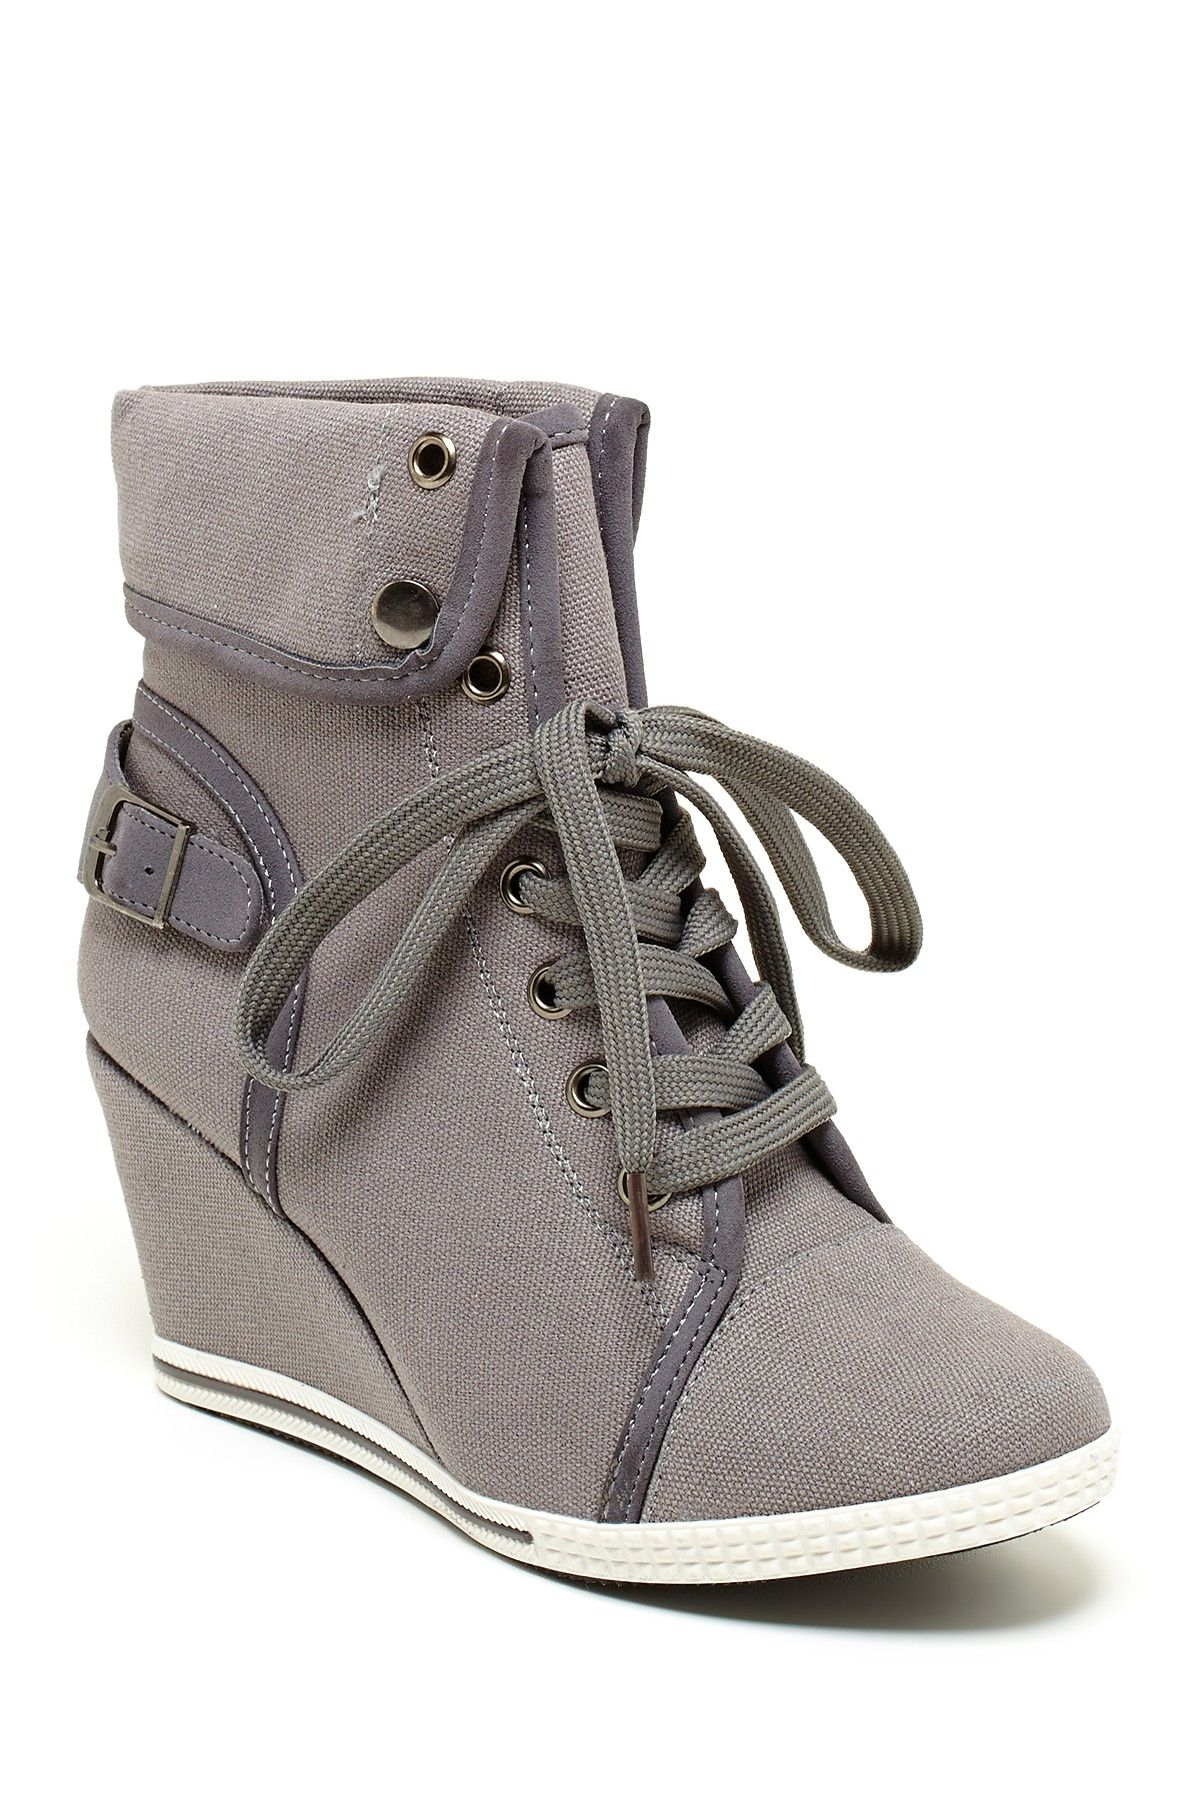 How to high wear heel wedge sneakers new photo